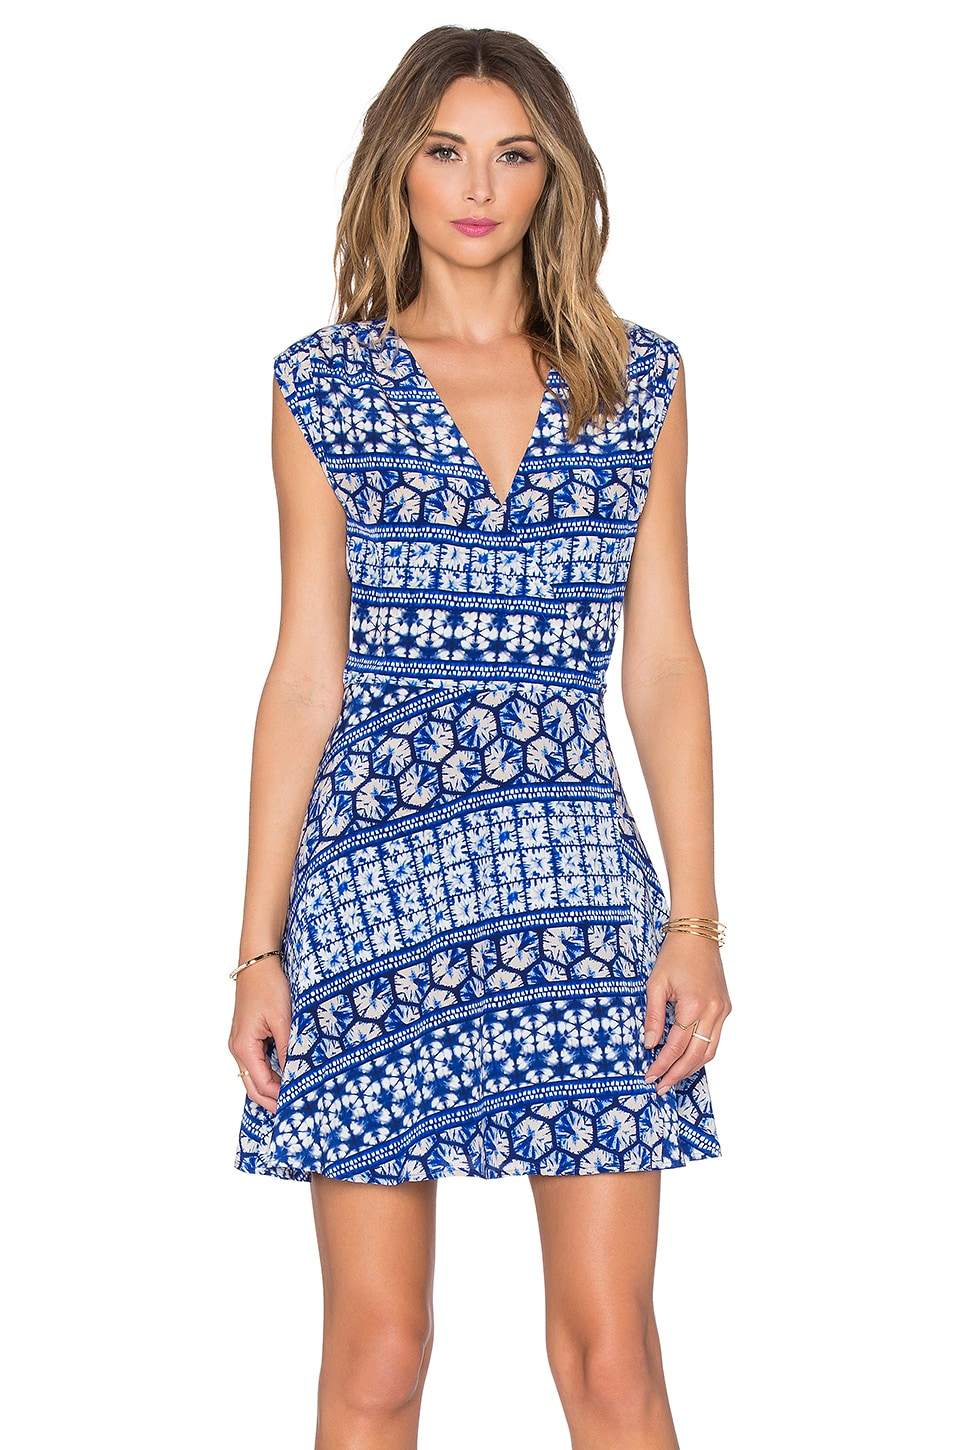 Yumi Kim Soho Mixer Dress in Blue Kaleidoscope